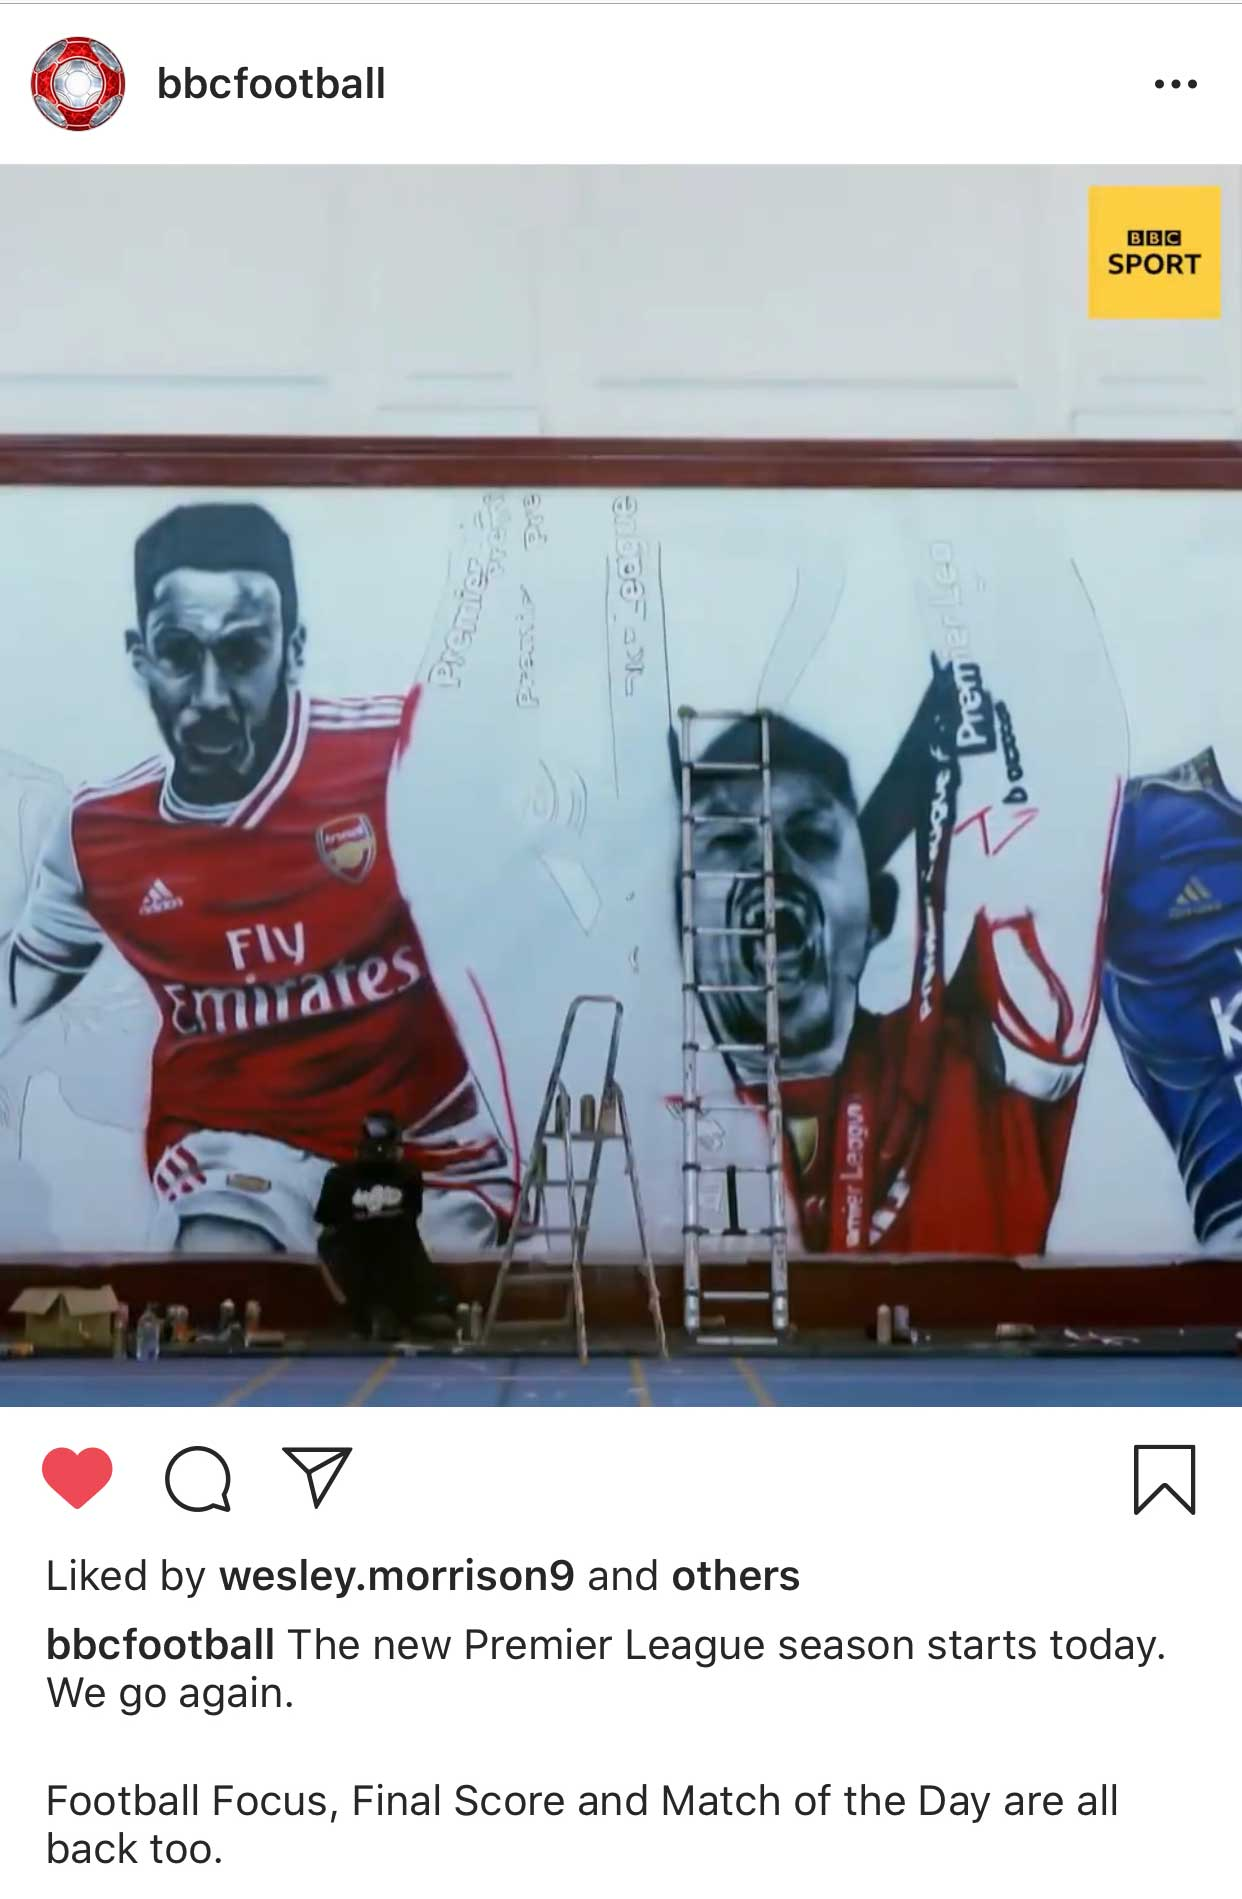 bbc-match-of-the-day-football-focus-wall-mural